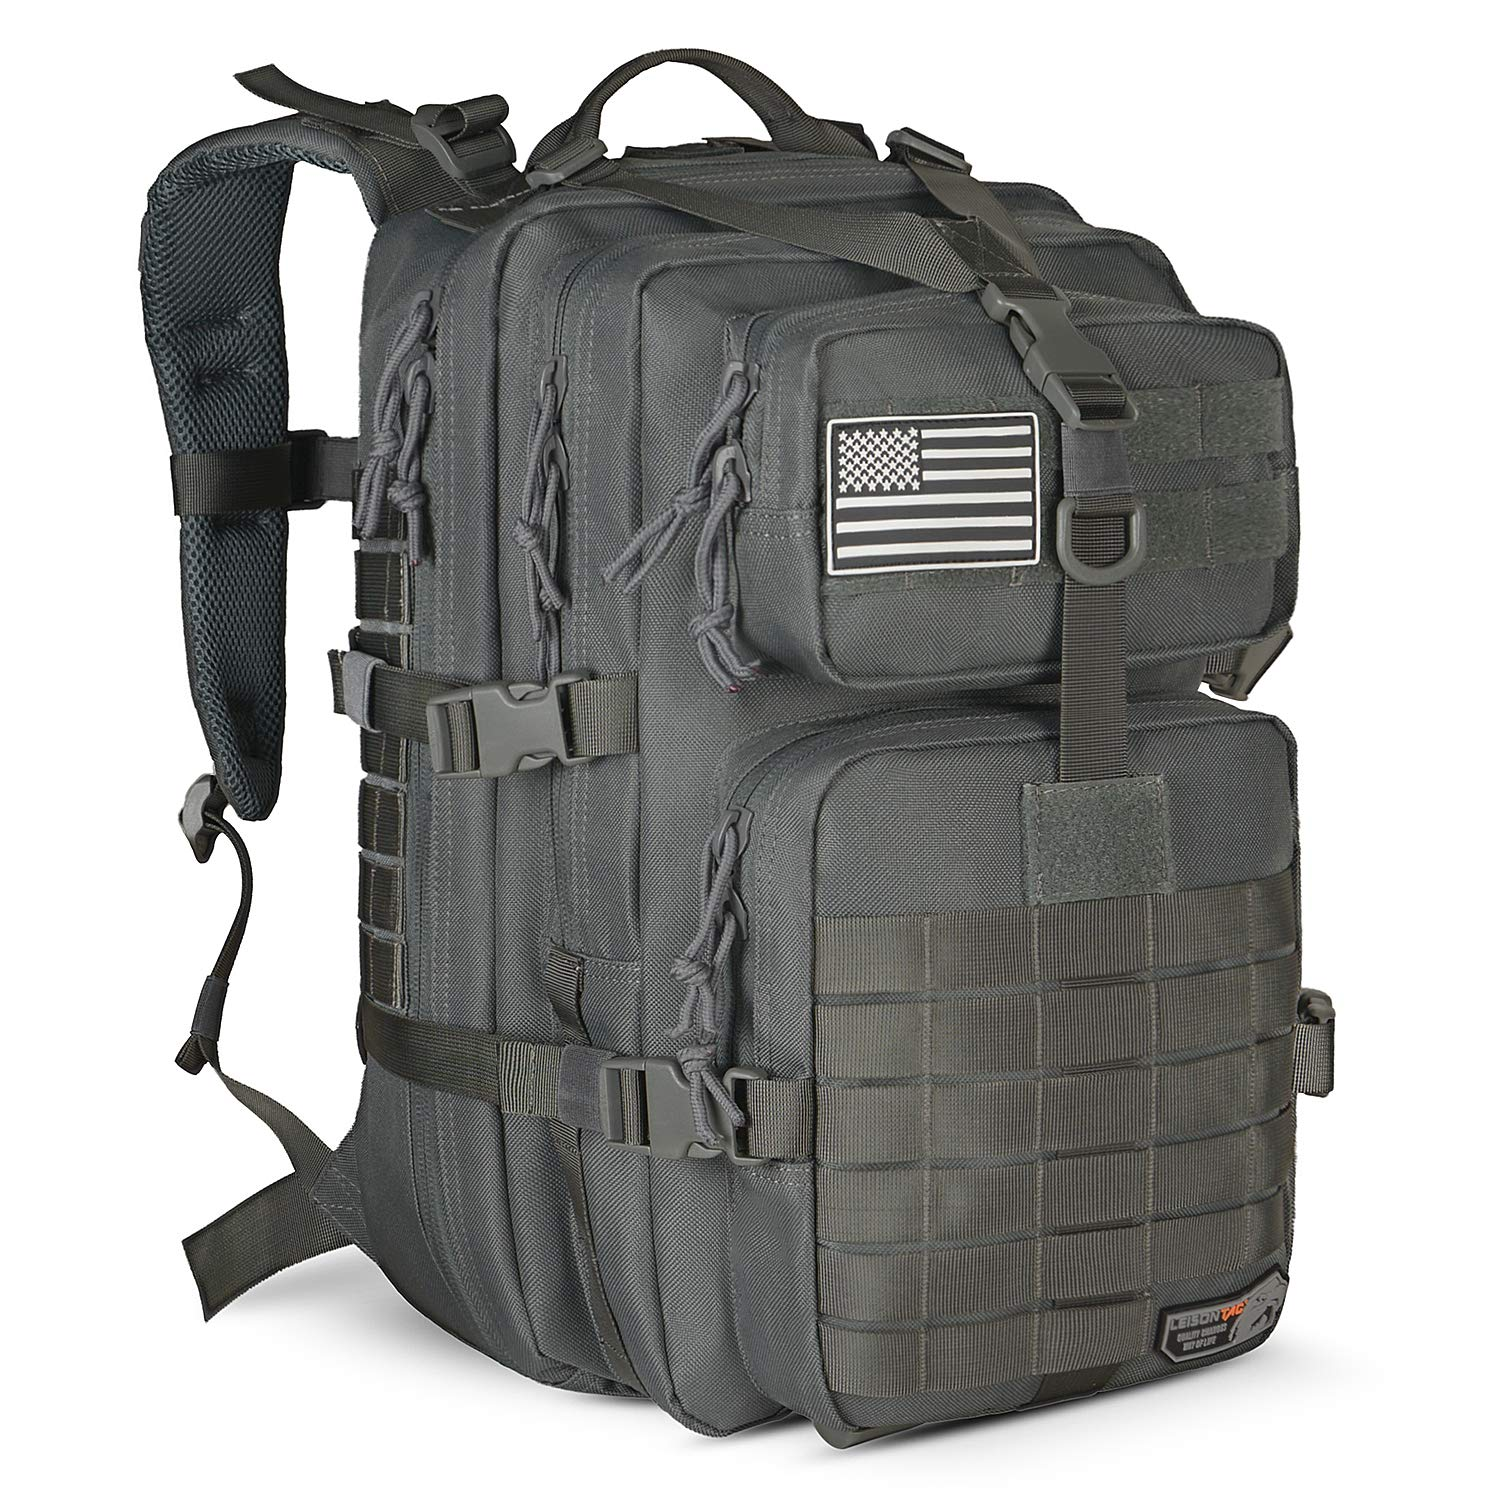 LeisonTac Tactical Backpack Military ISO Standard for Hunting Hiking Travel & Camping   Heavy Duty Nylon Stitching Water Resistant Small Rucksack with Hydration Bladder Compartment (Gray)